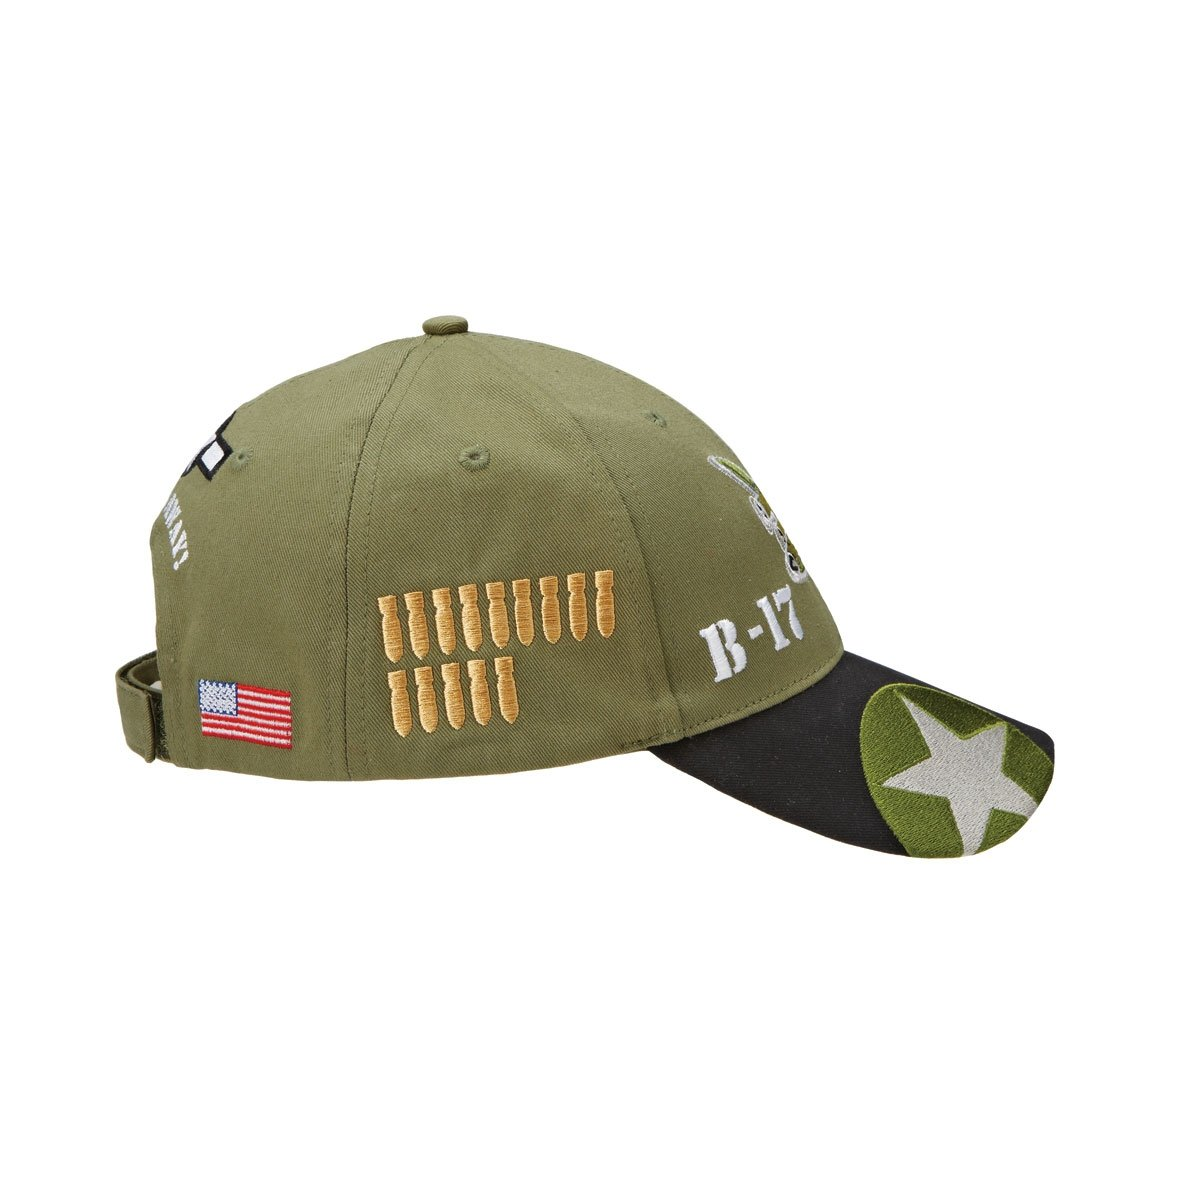 e2ded7a91d7 Sporty s Adjustable B-17 Flying Fortress Bomber Airplane Cap Hat Olive at  Amazon Men s Clothing store